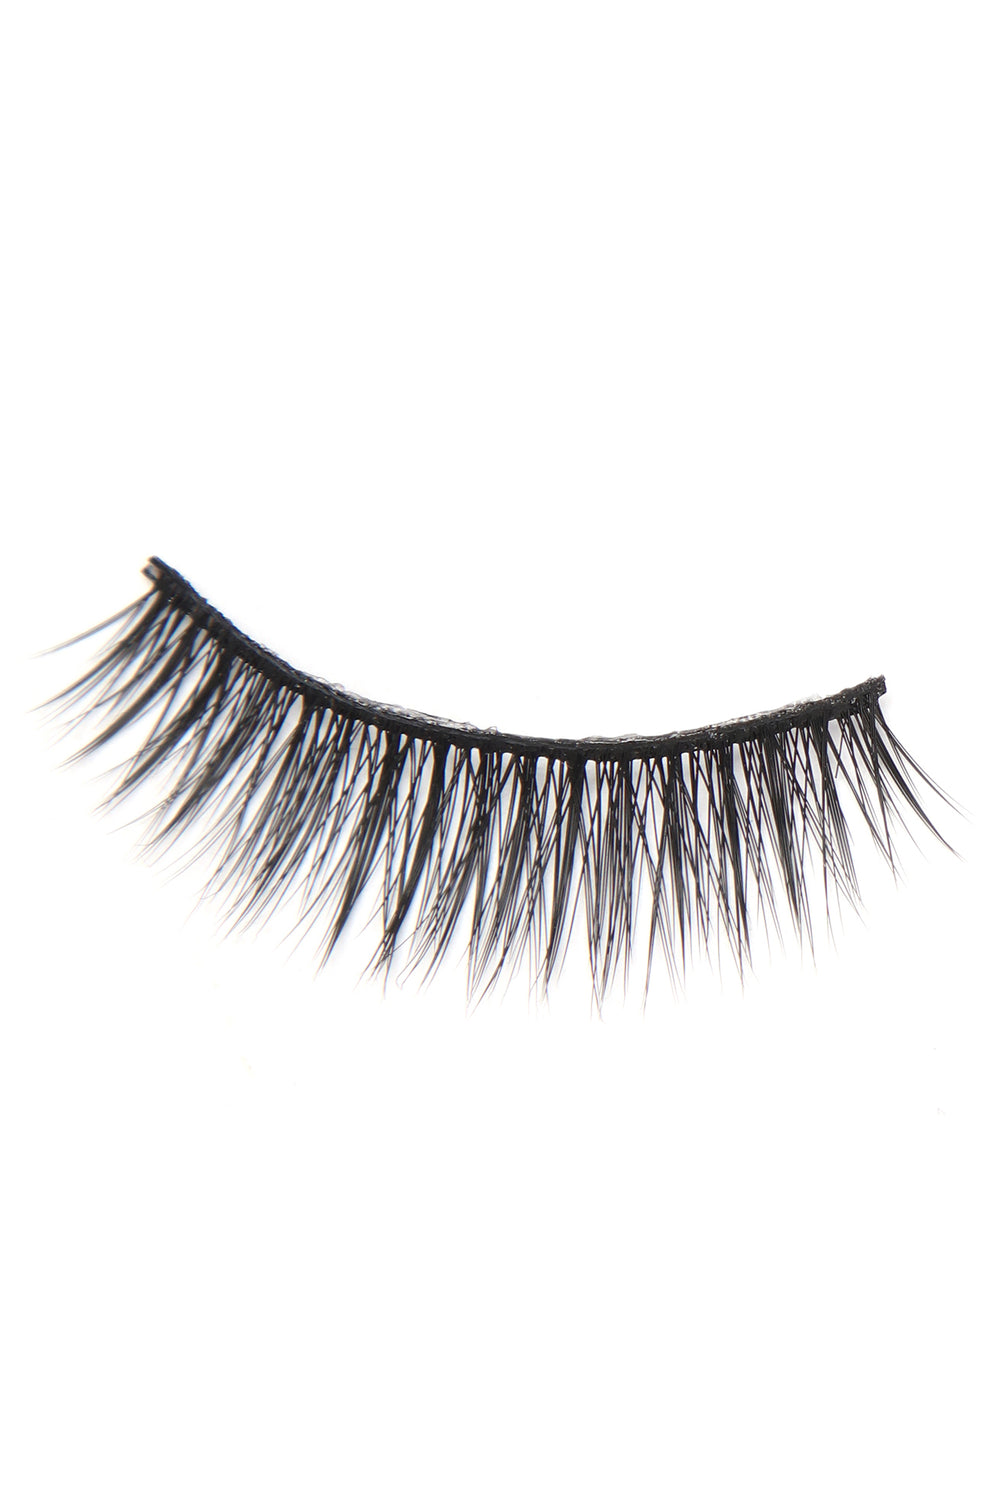 Lash Pop In The Pink Lashes